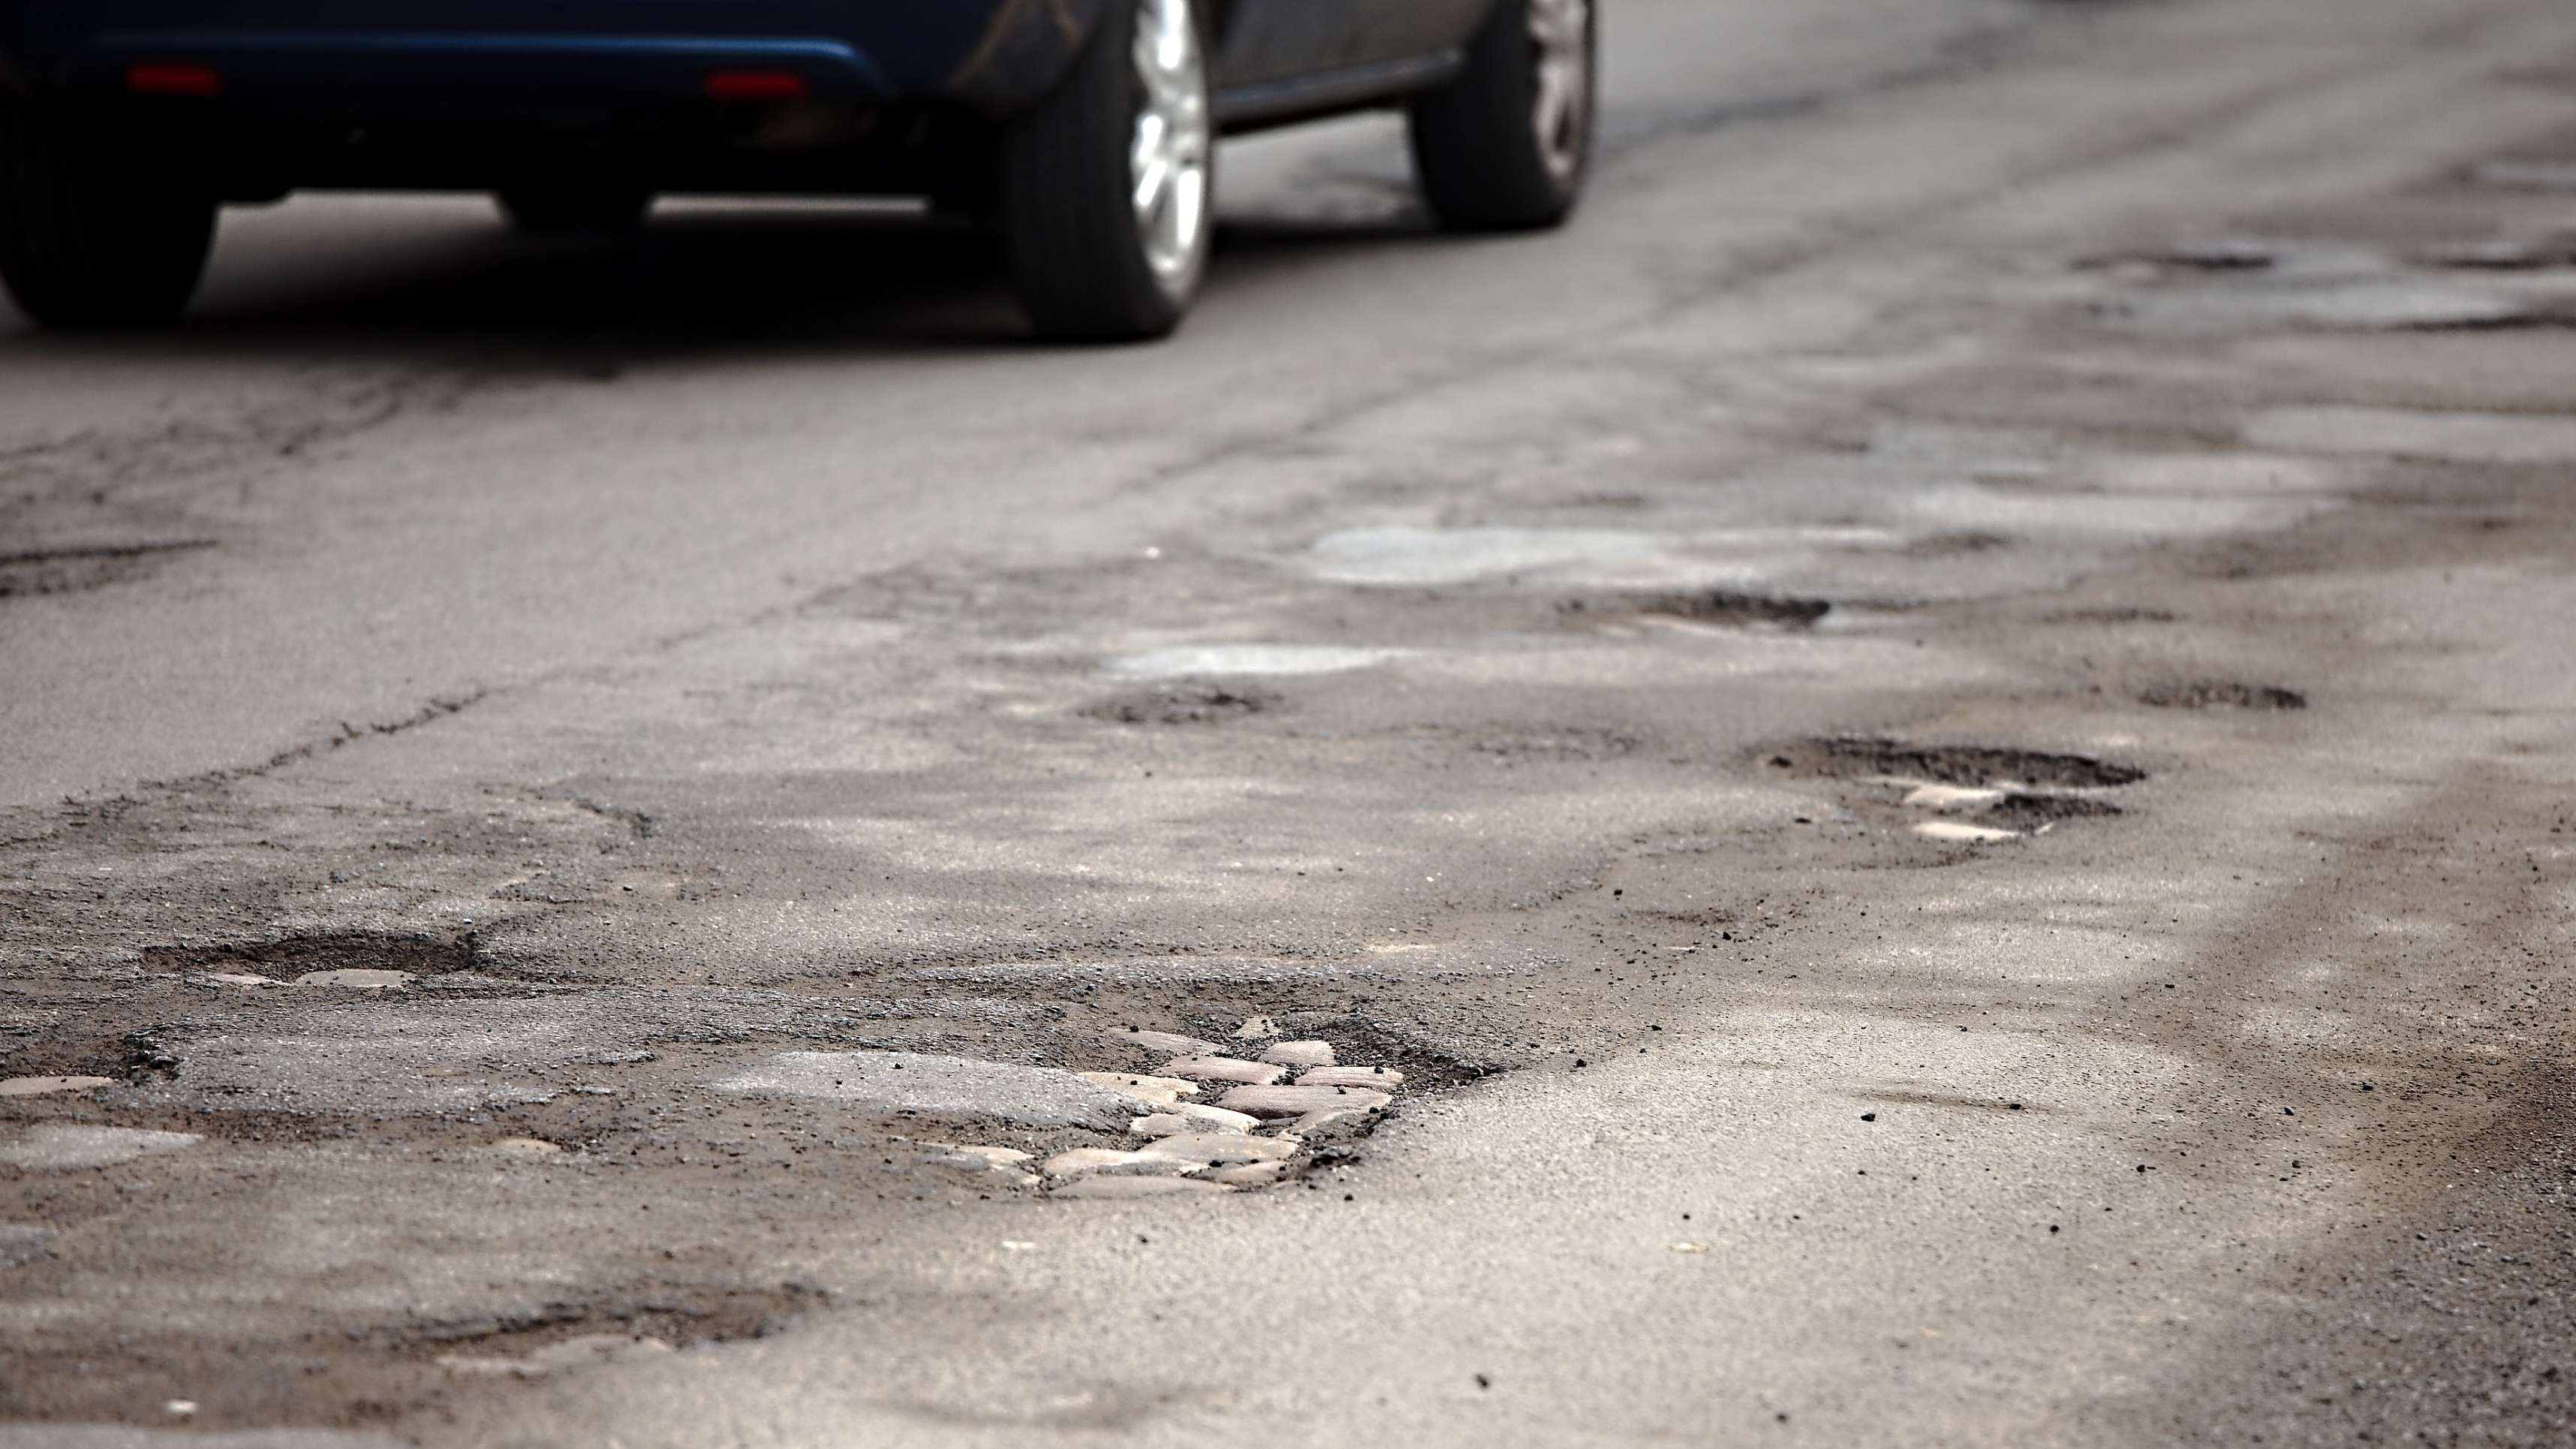 Need to Repair Potholes in Your Area?